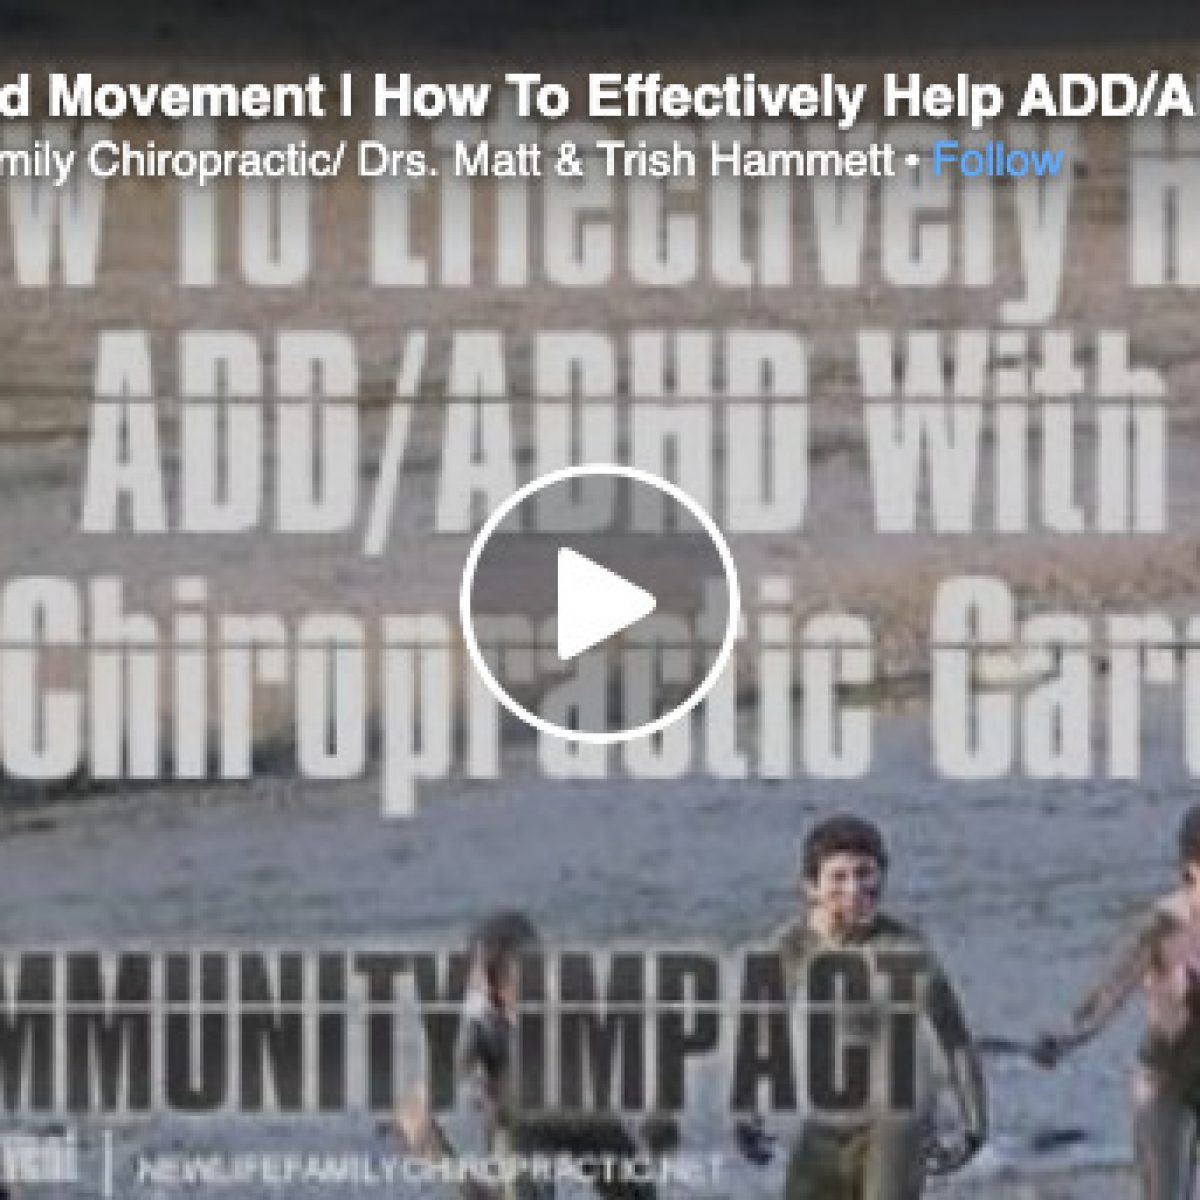 Focus and Movement | How To Effectively Help ADD/ADHD With Chiropractic